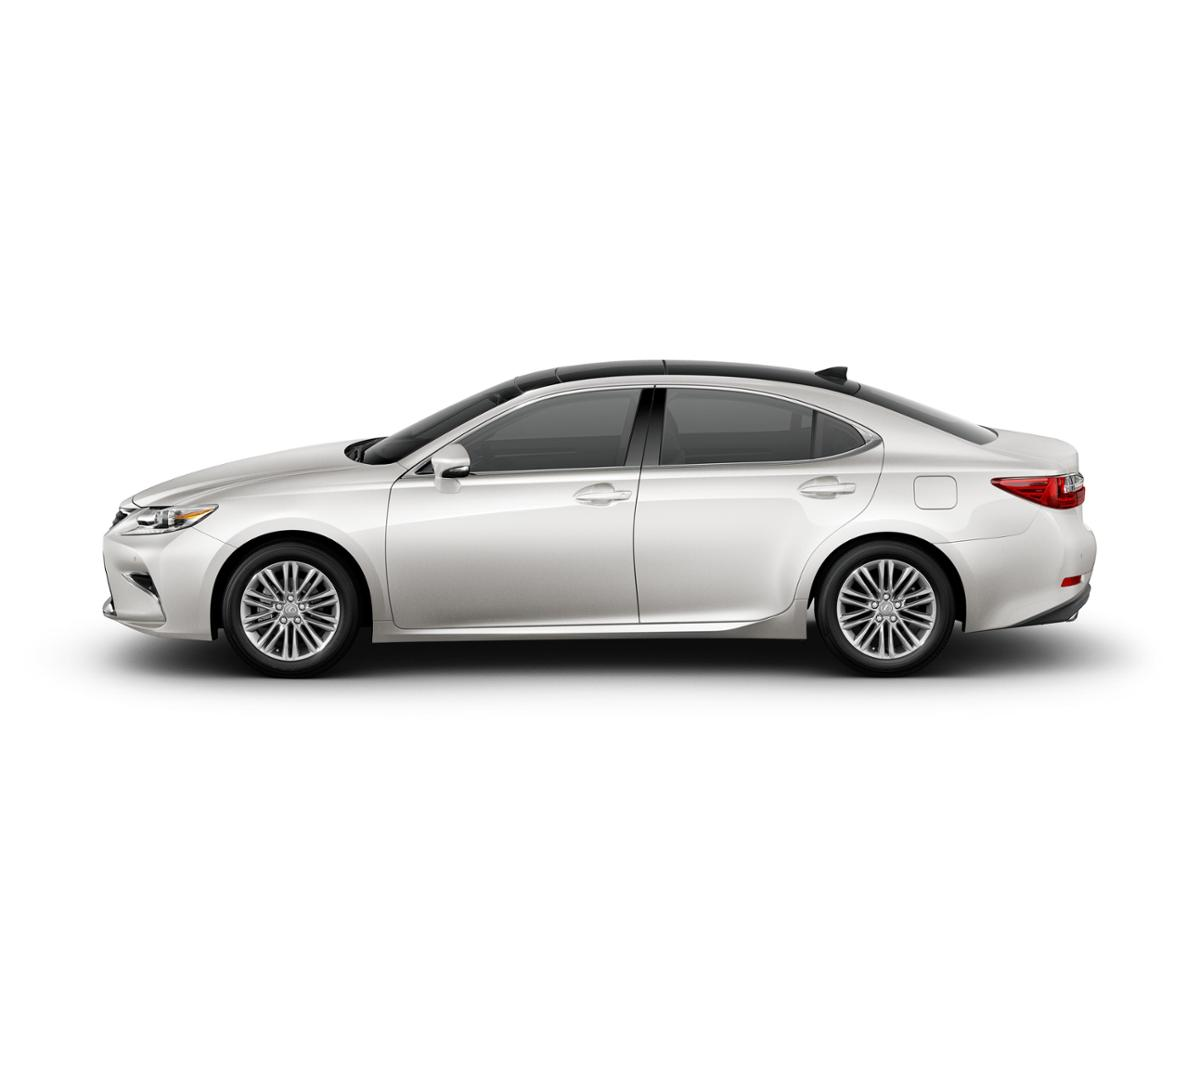 2016 eminent white pearl lexus es 350 new car for sale in east haven t601. Black Bedroom Furniture Sets. Home Design Ideas